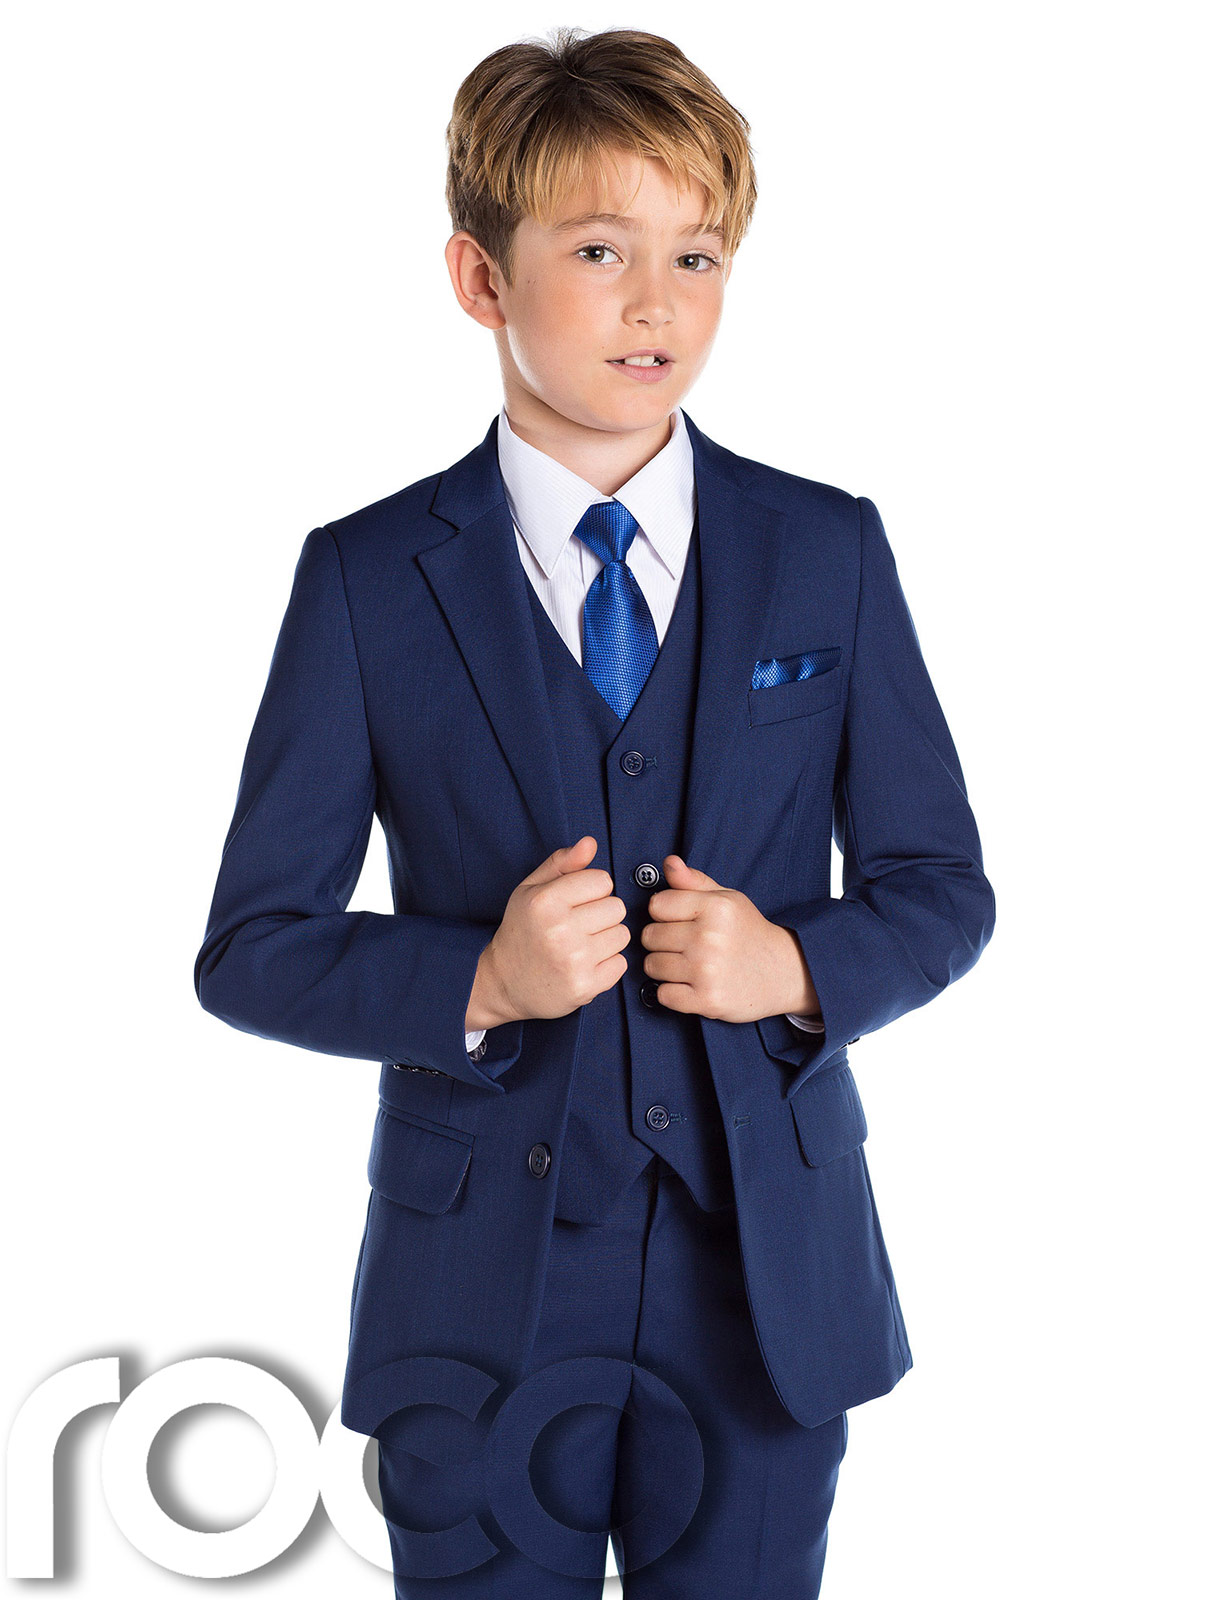 Blue Boys' Suits & Boys' Dress Shirts at Macy's come in a variety of styles and sizes. Shop Blue Boys' Suits & Boys' Dress Shirts at Macy's and find the latest .